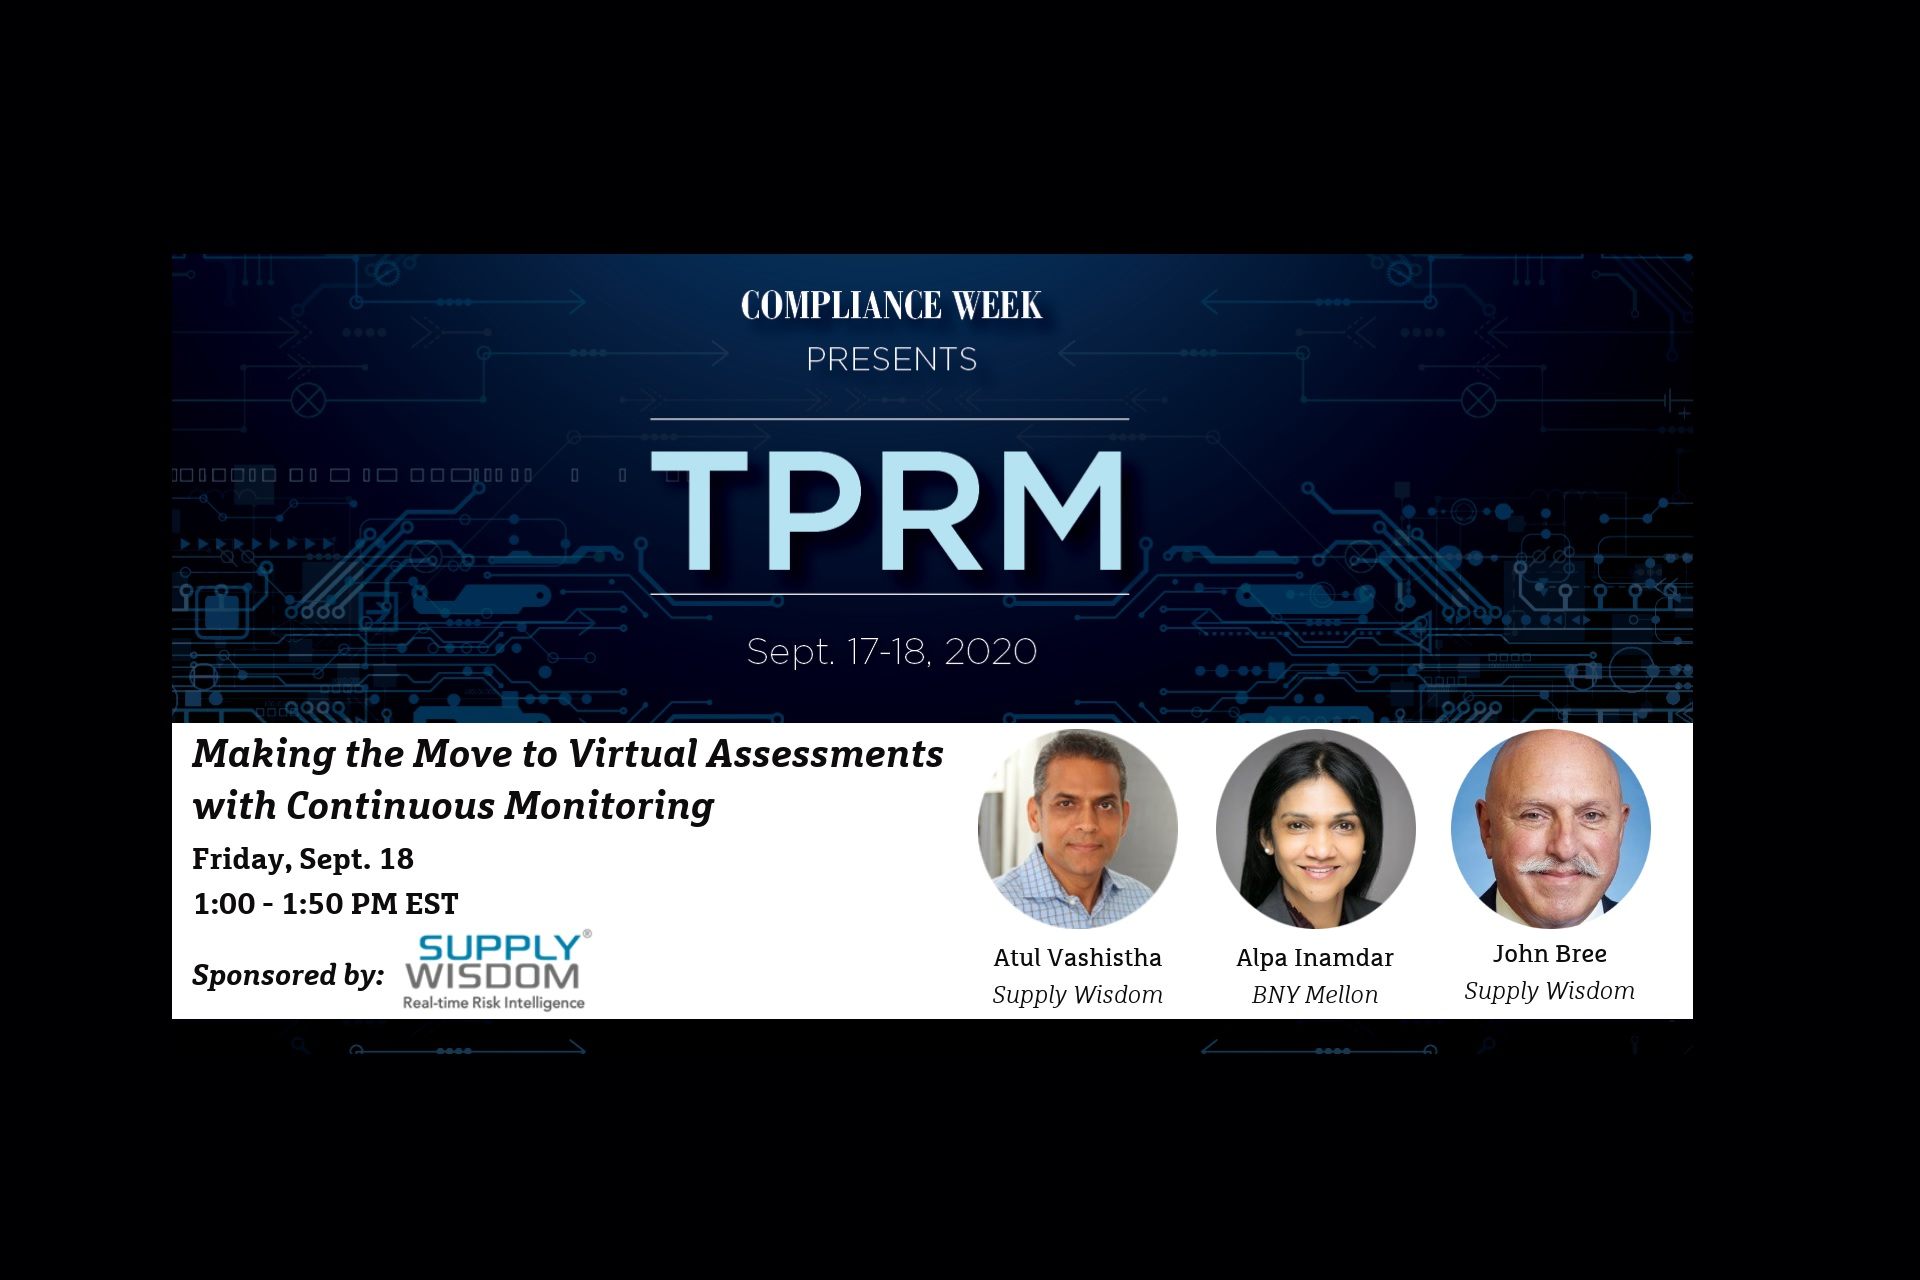 Supply Wisdom sponsors Compliance Week TPRM 2020